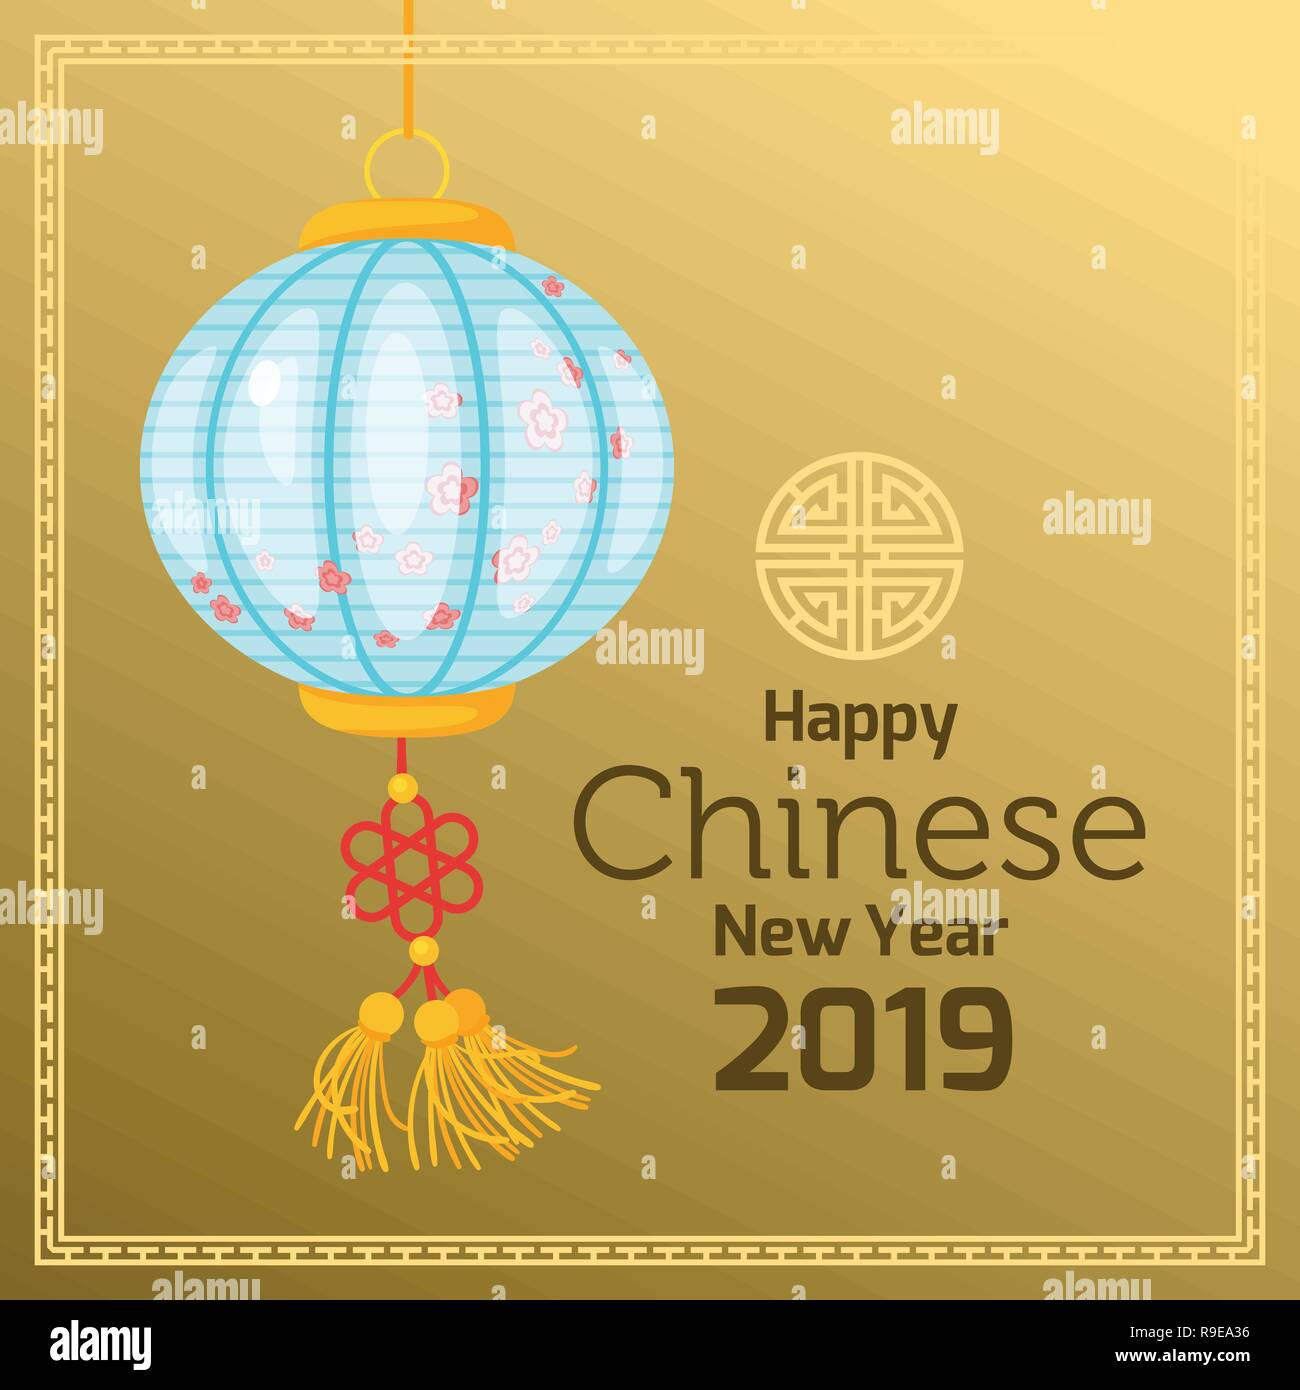 Chinese 2019 New Year banner or card with traditional paper